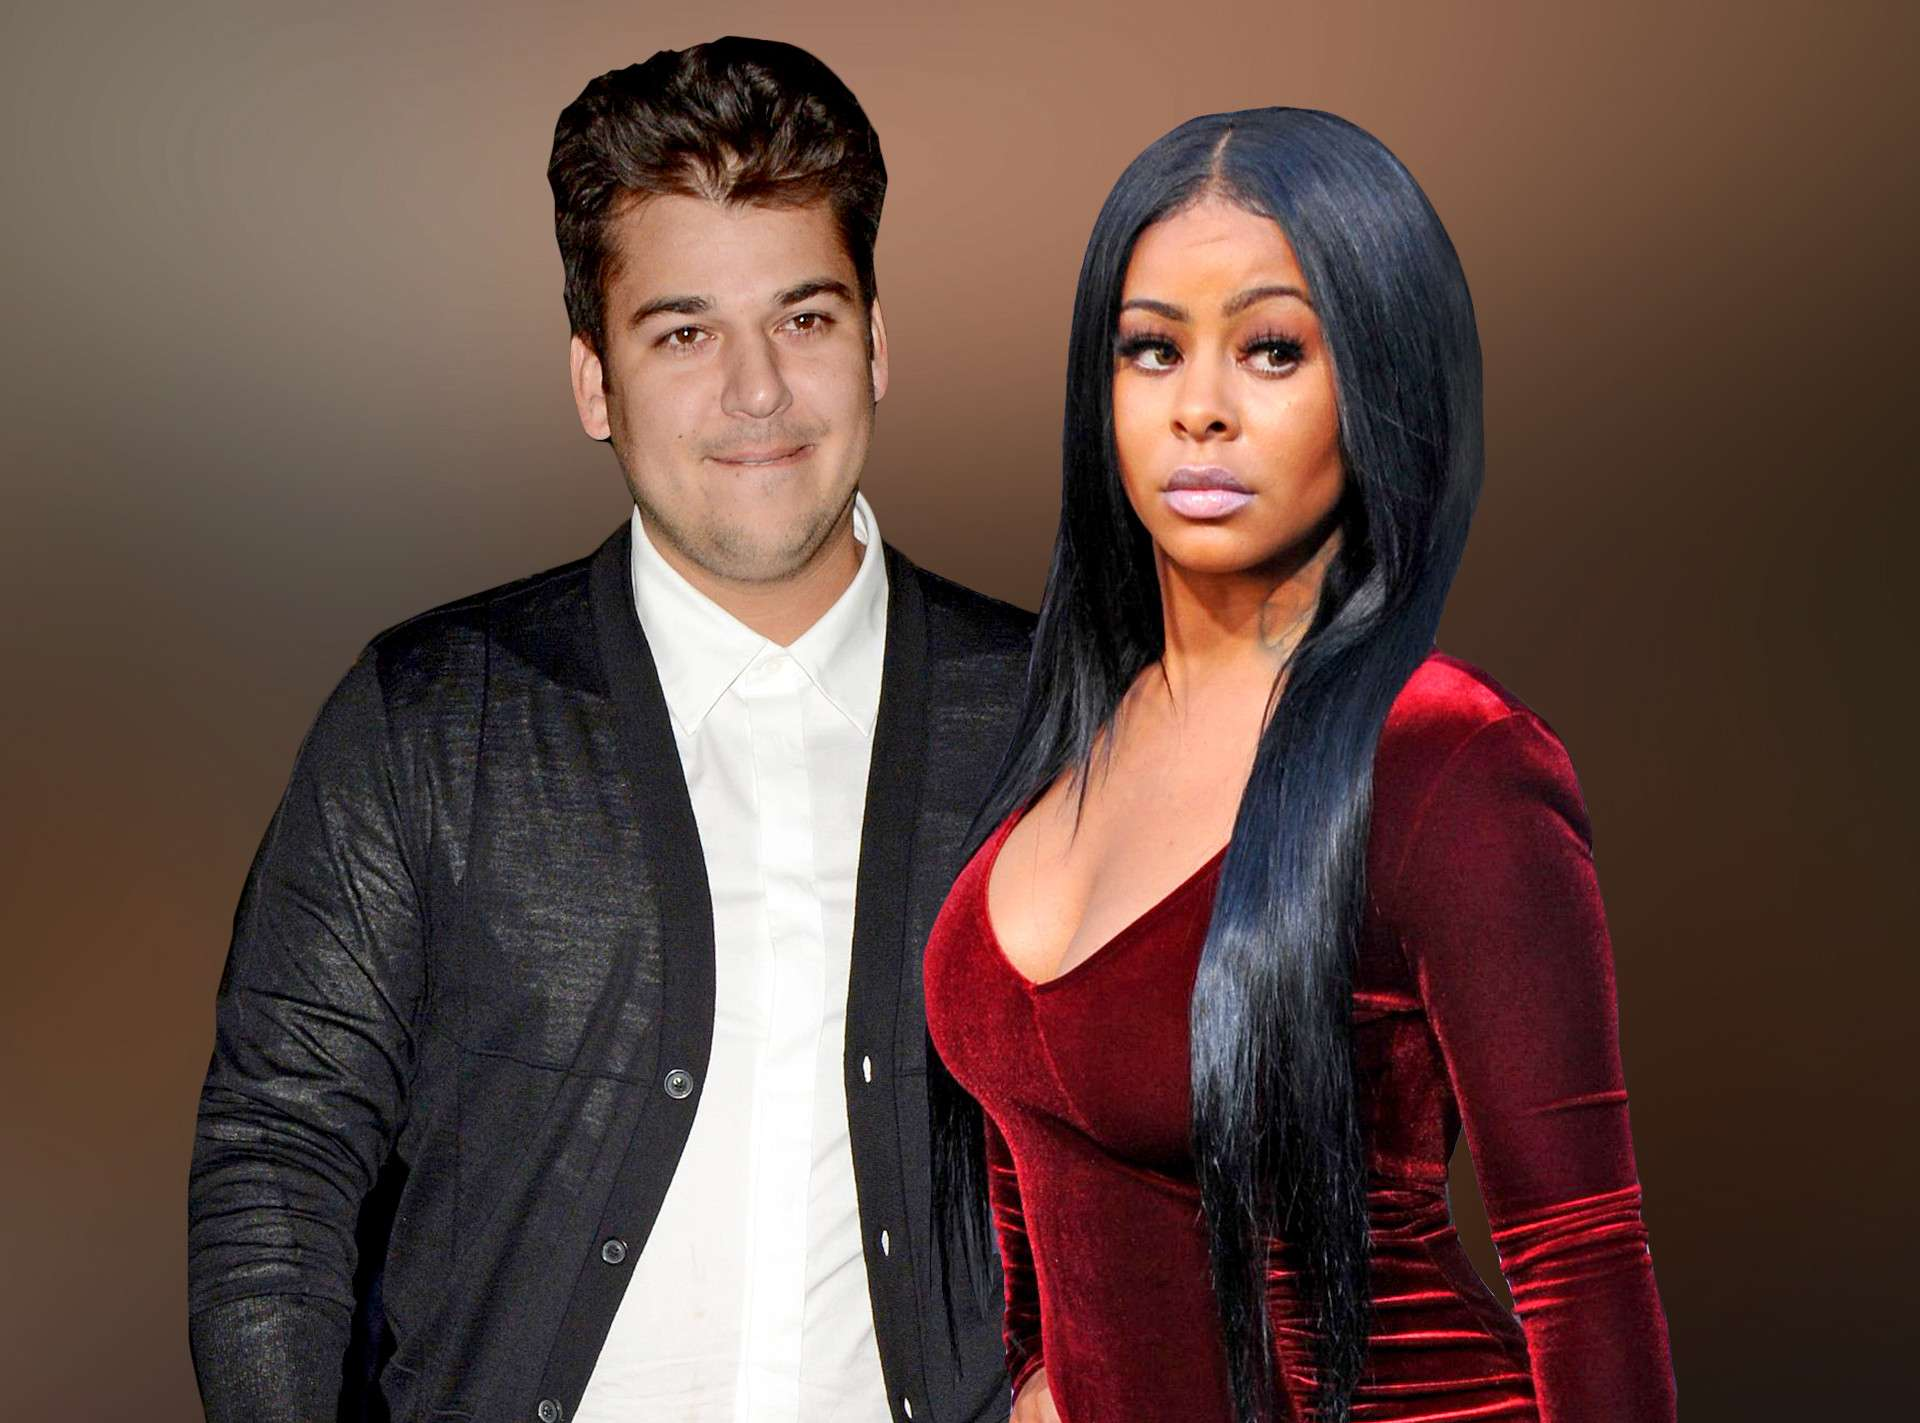 Rob Kardashian And Alexis Skyy Are Officially Dating